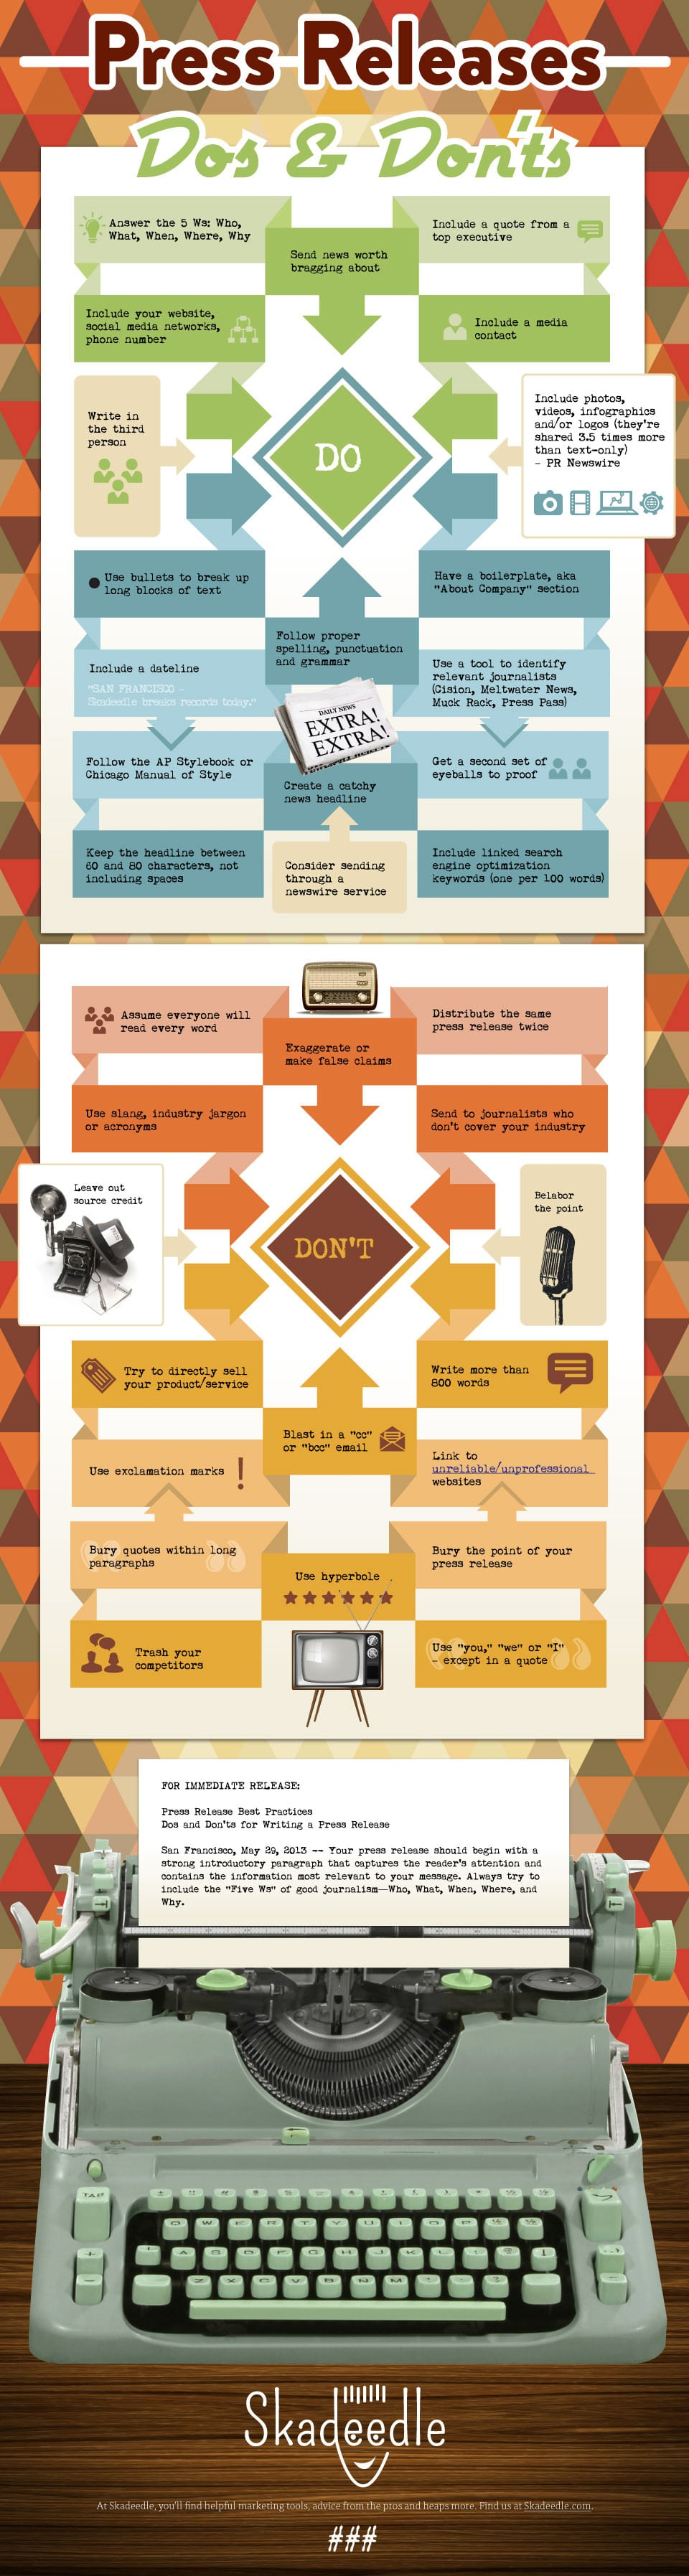 How To Craft An Attention Grabbing Press Release [Infographic]